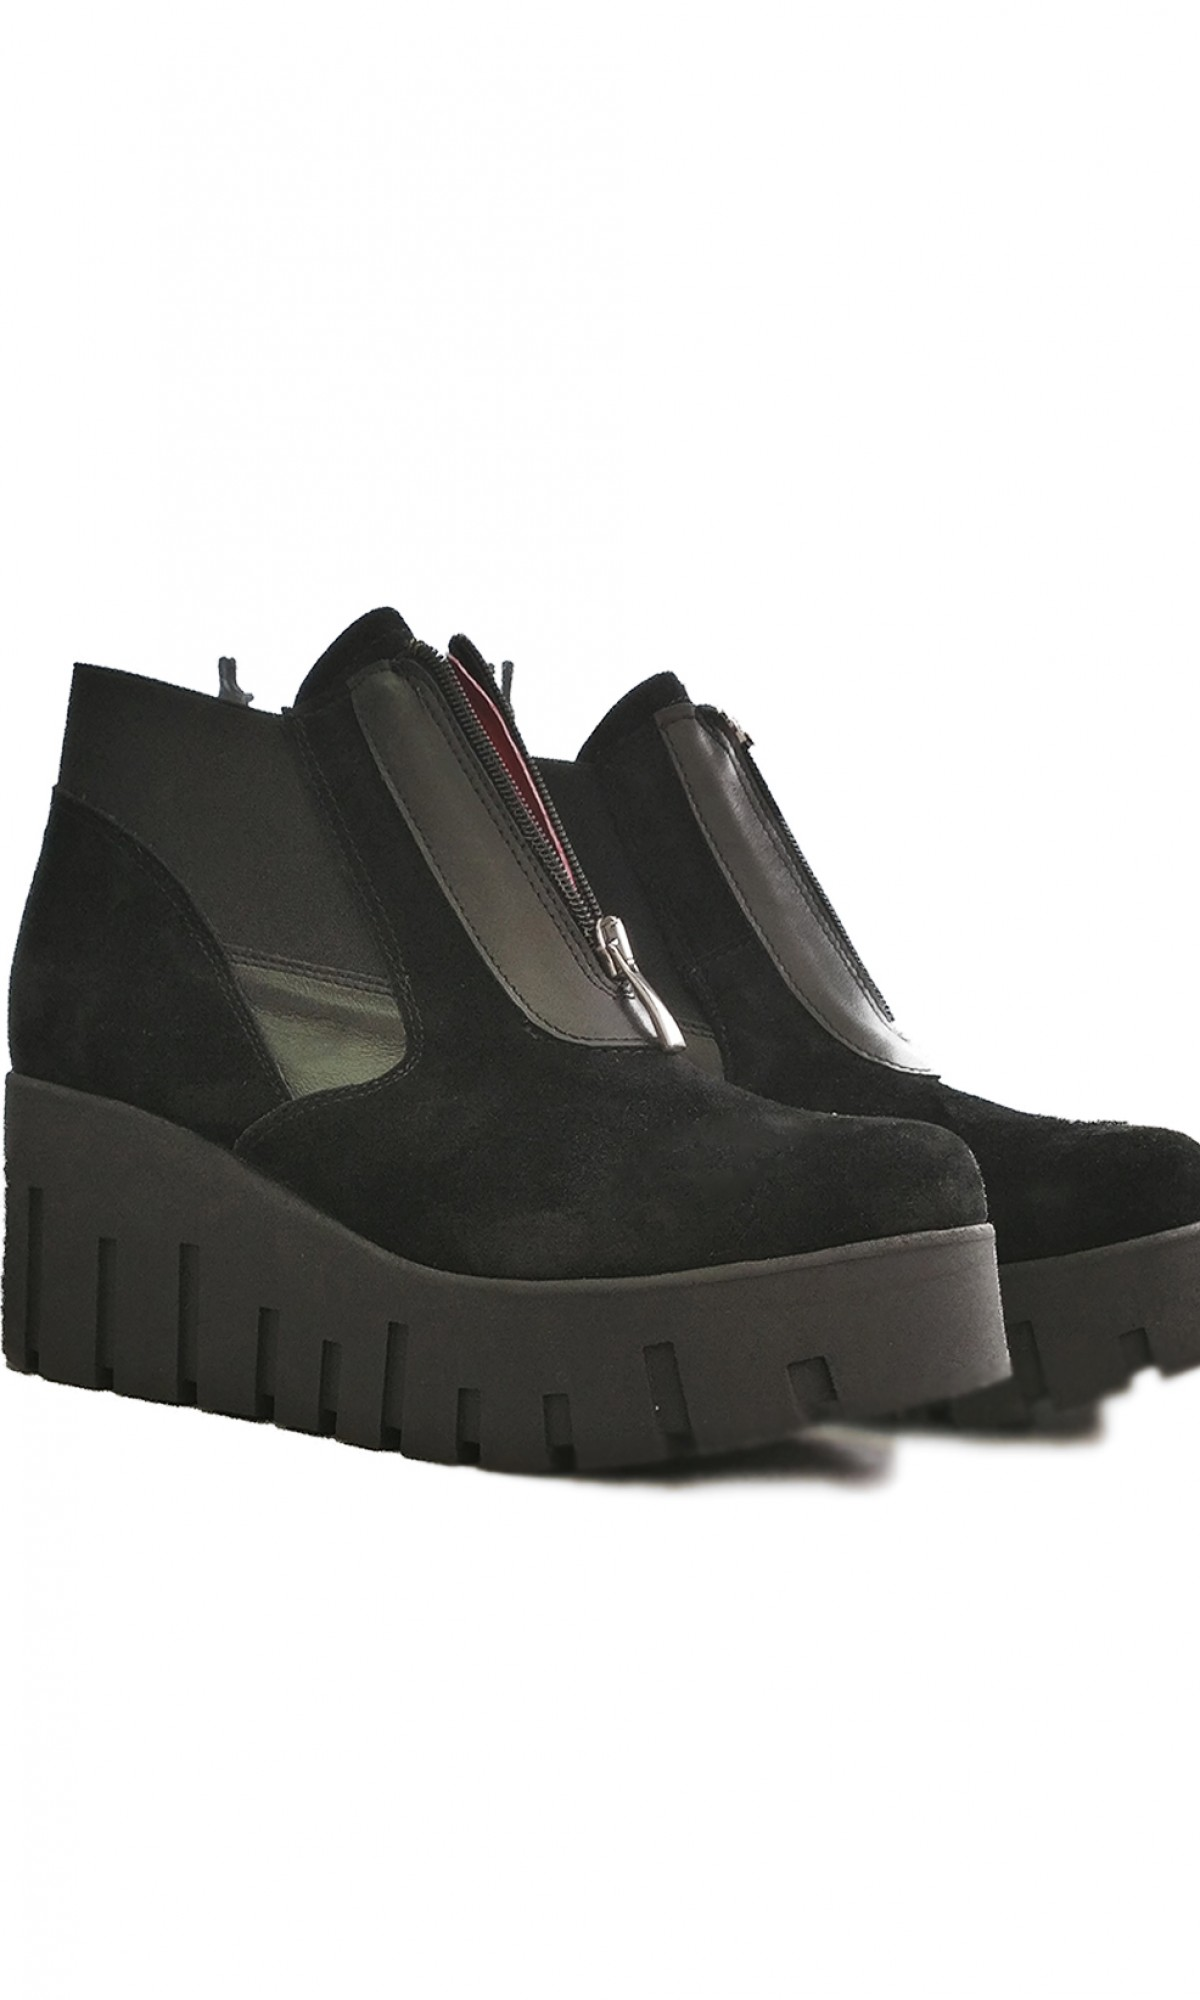 Black Suede Platform Shoes A15752